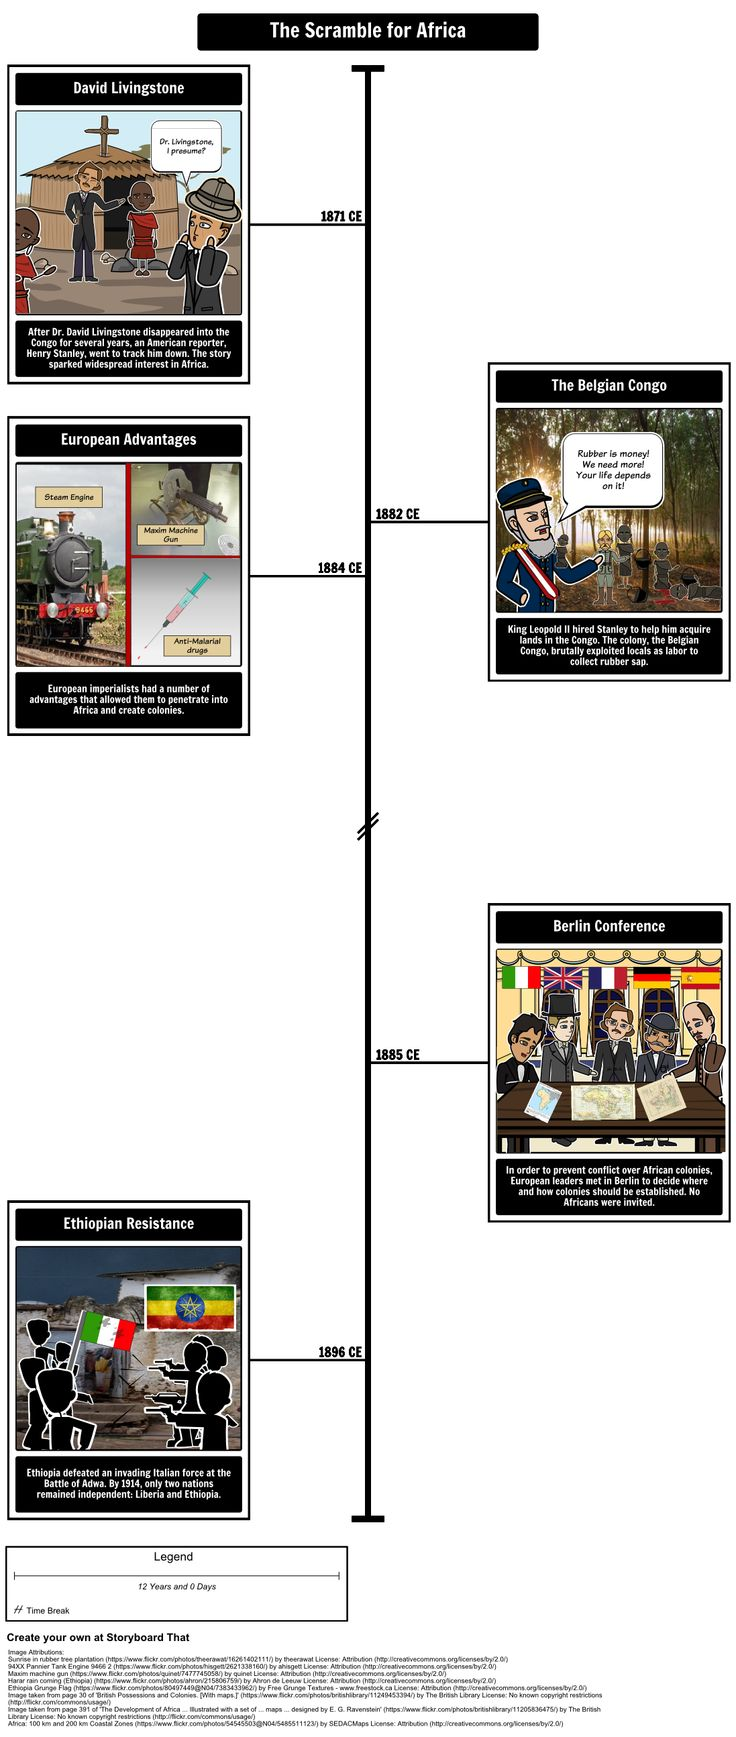 History of Imperialism - Scramble for Africa: Understanding the struggles of modern Africa requires an in-depth knowledge of the era known as the Scramble for Africa. In this activity, students will create a timeline that explains how European nations came to dominate Africa by 1914.